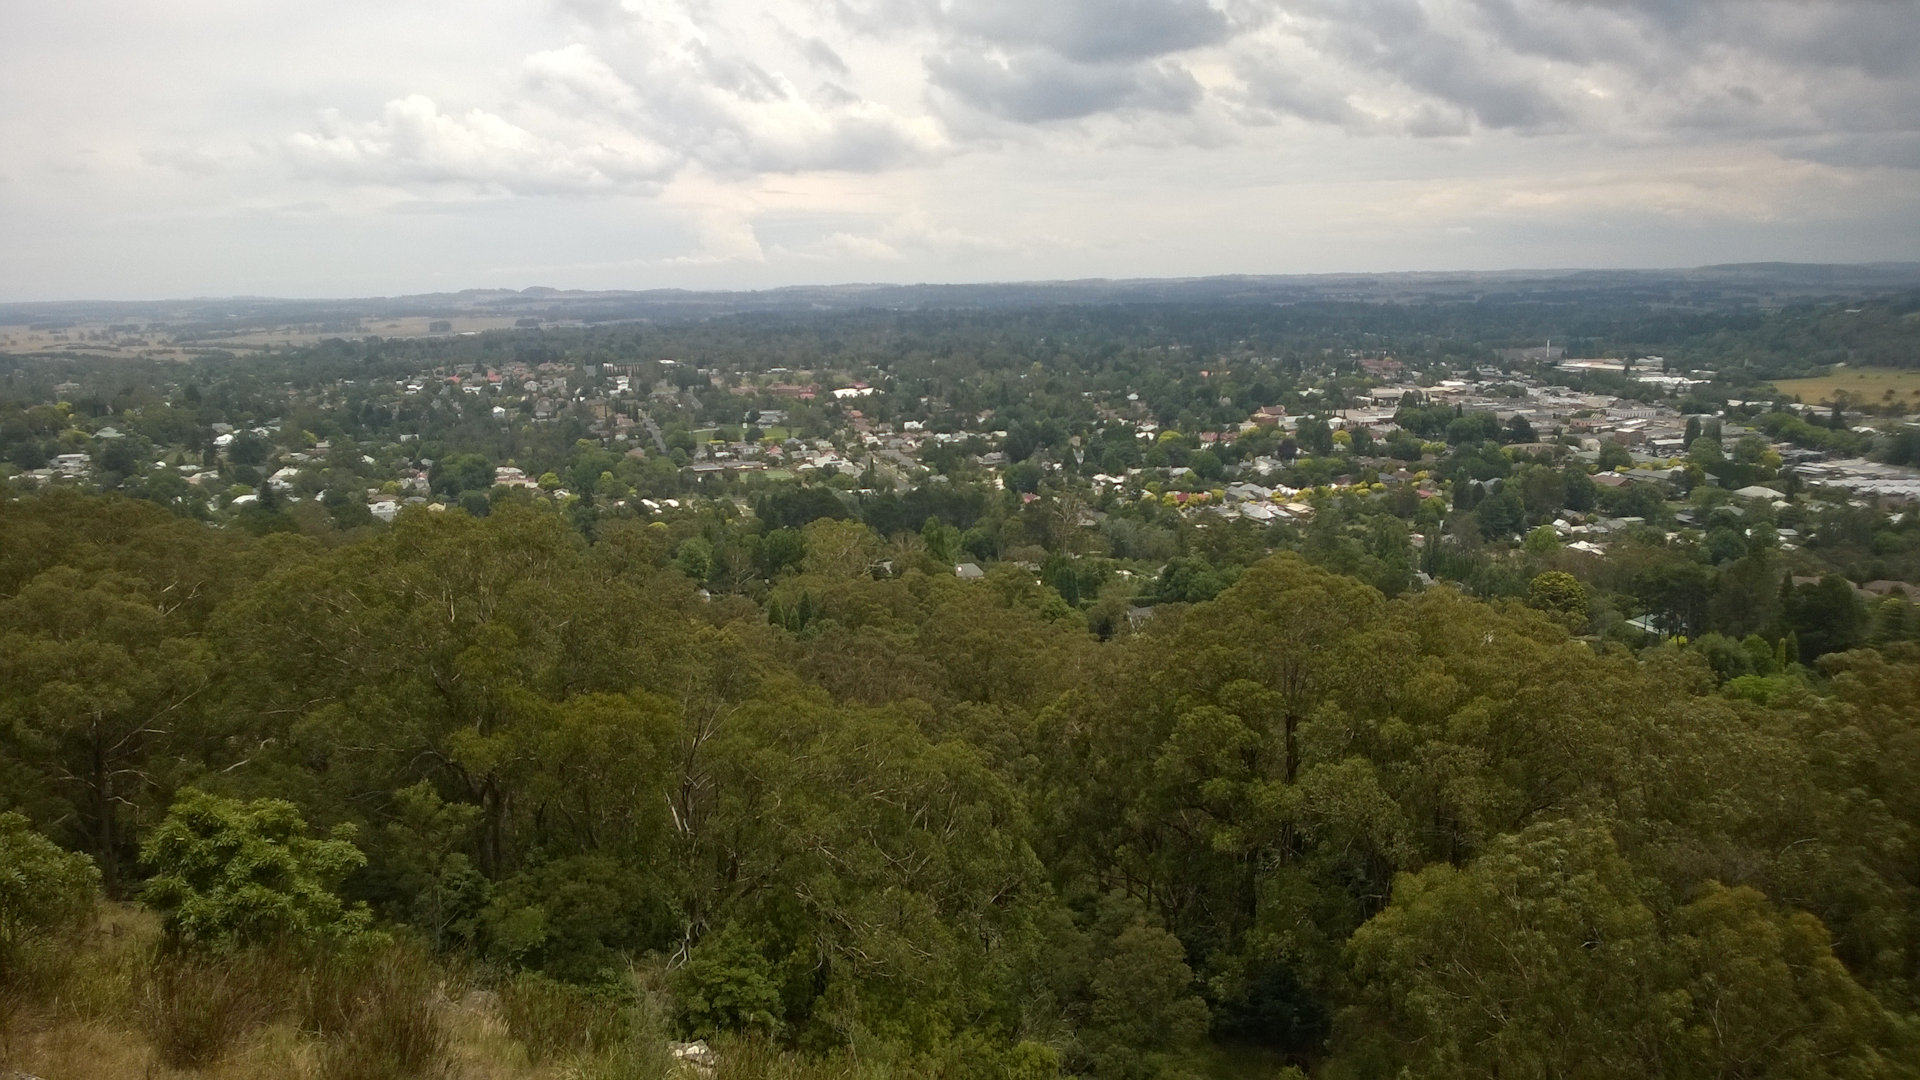 Bowral Lookout from the Mt Gibraltar Lookouts, a set of lookouts from a large rock outcrop, the remnant of a volcanic intrusion that sits between Bowral and Mittagong